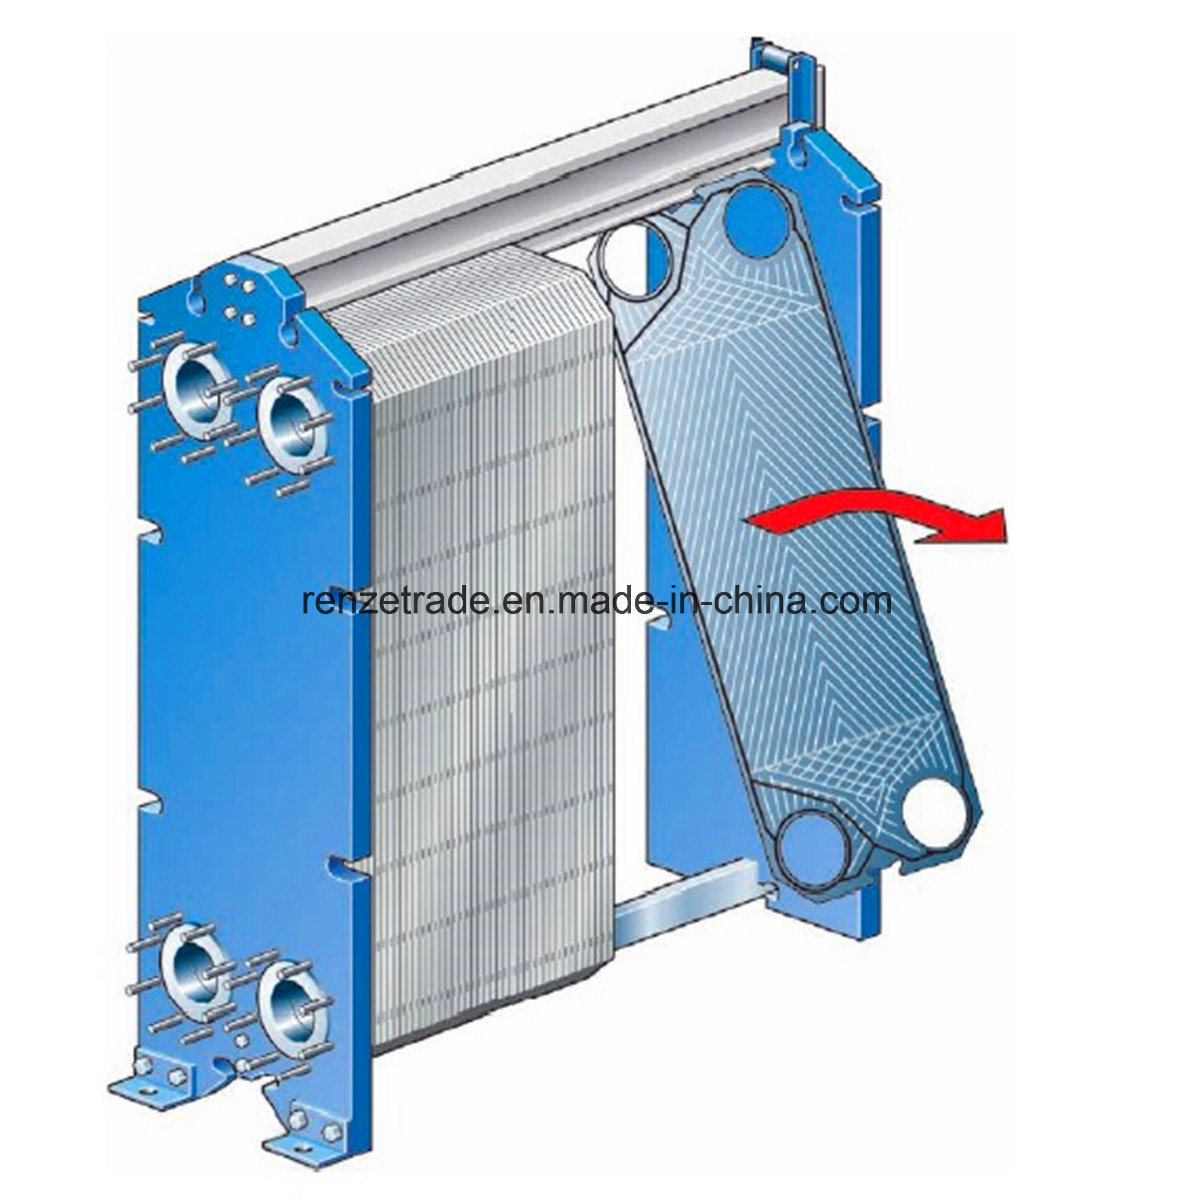 General Heating and Cooling Alfa Laval Replacement Gasketed Plate Heat Exchanger